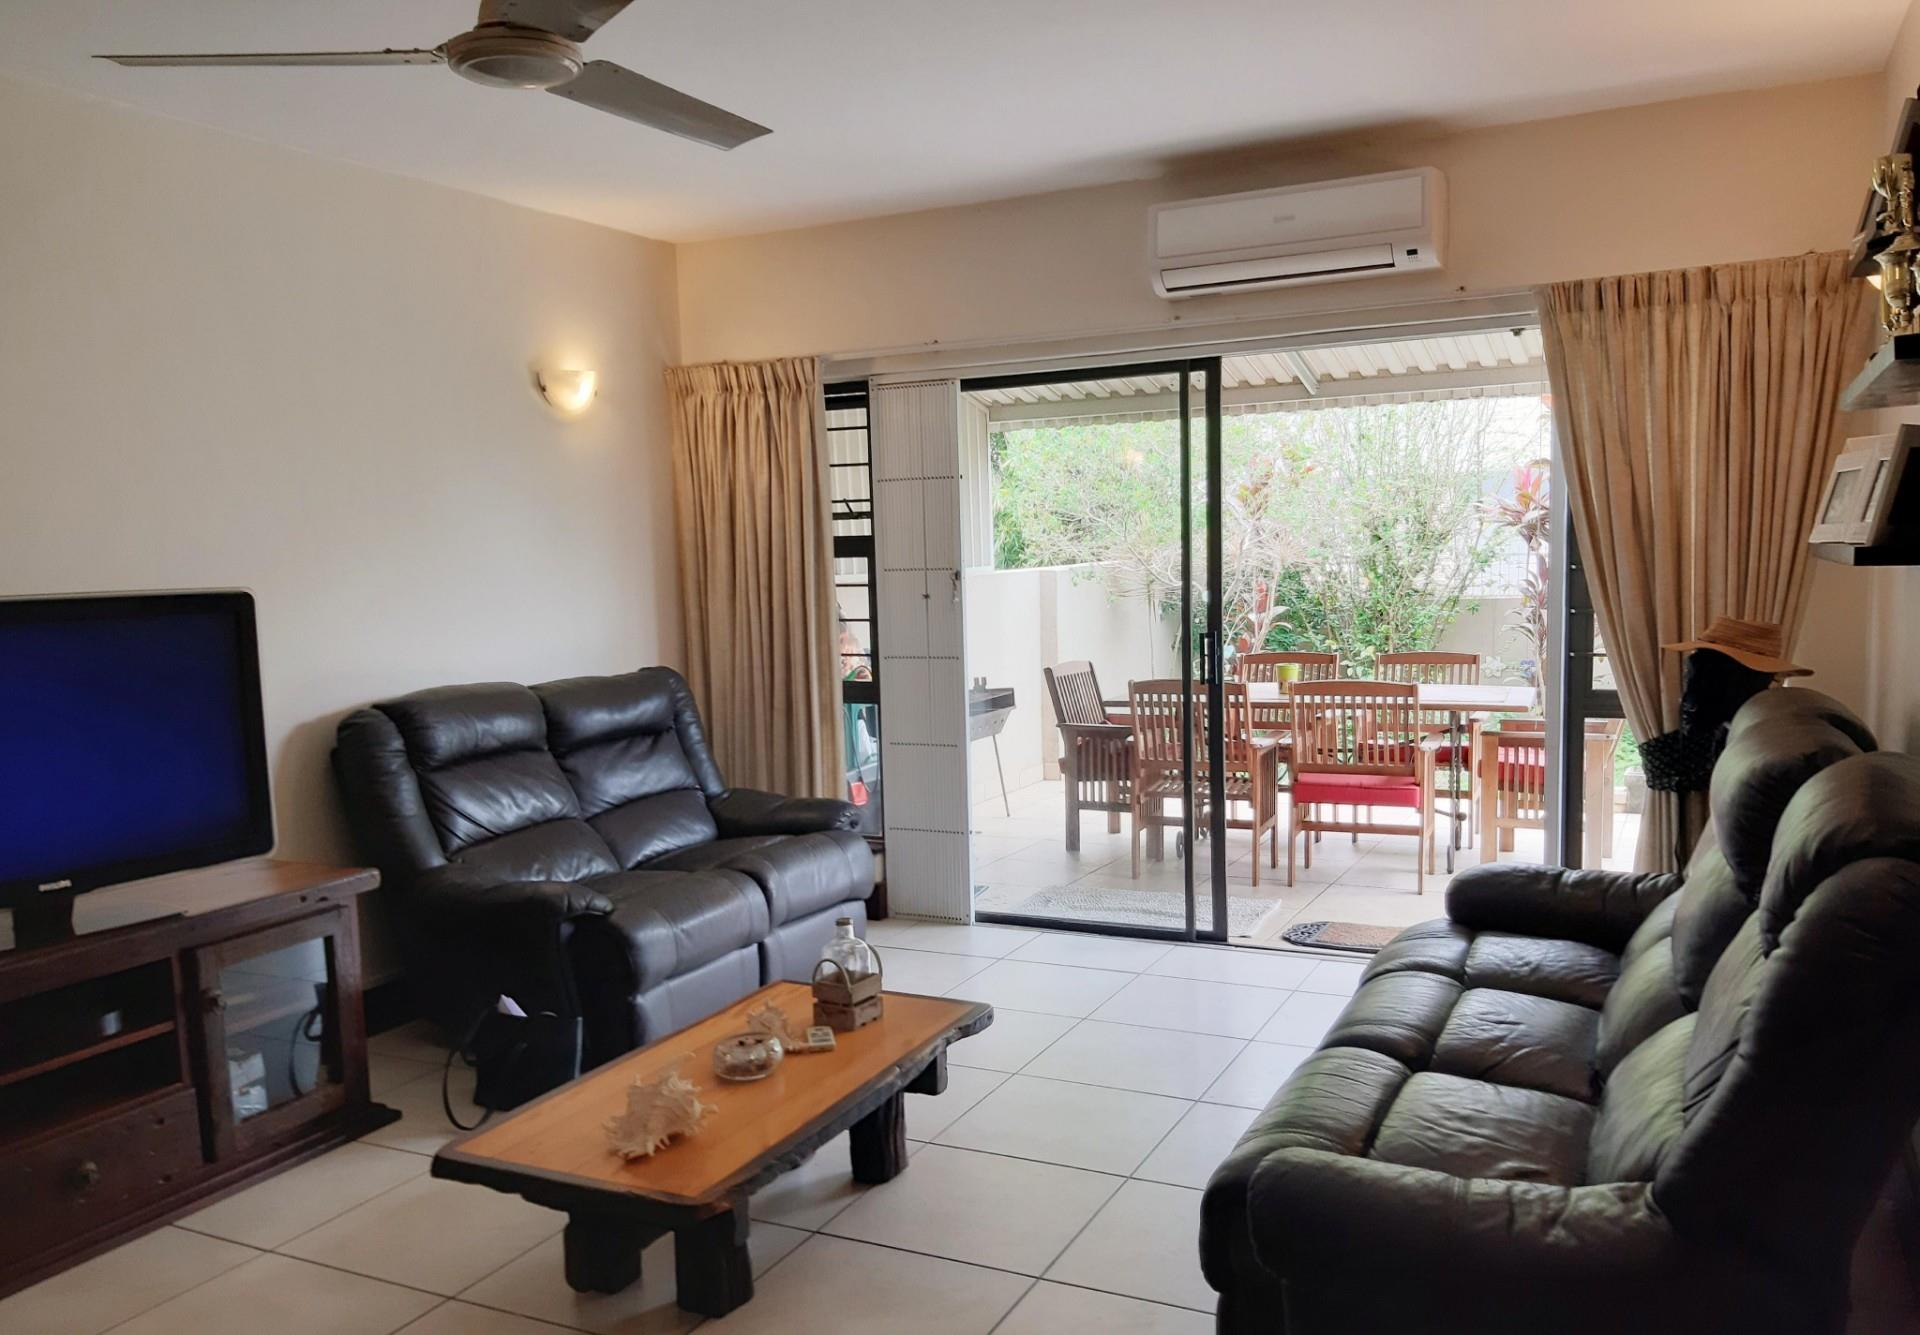 2 Bedroom Simplex For Sale in Umhlanga Rocks